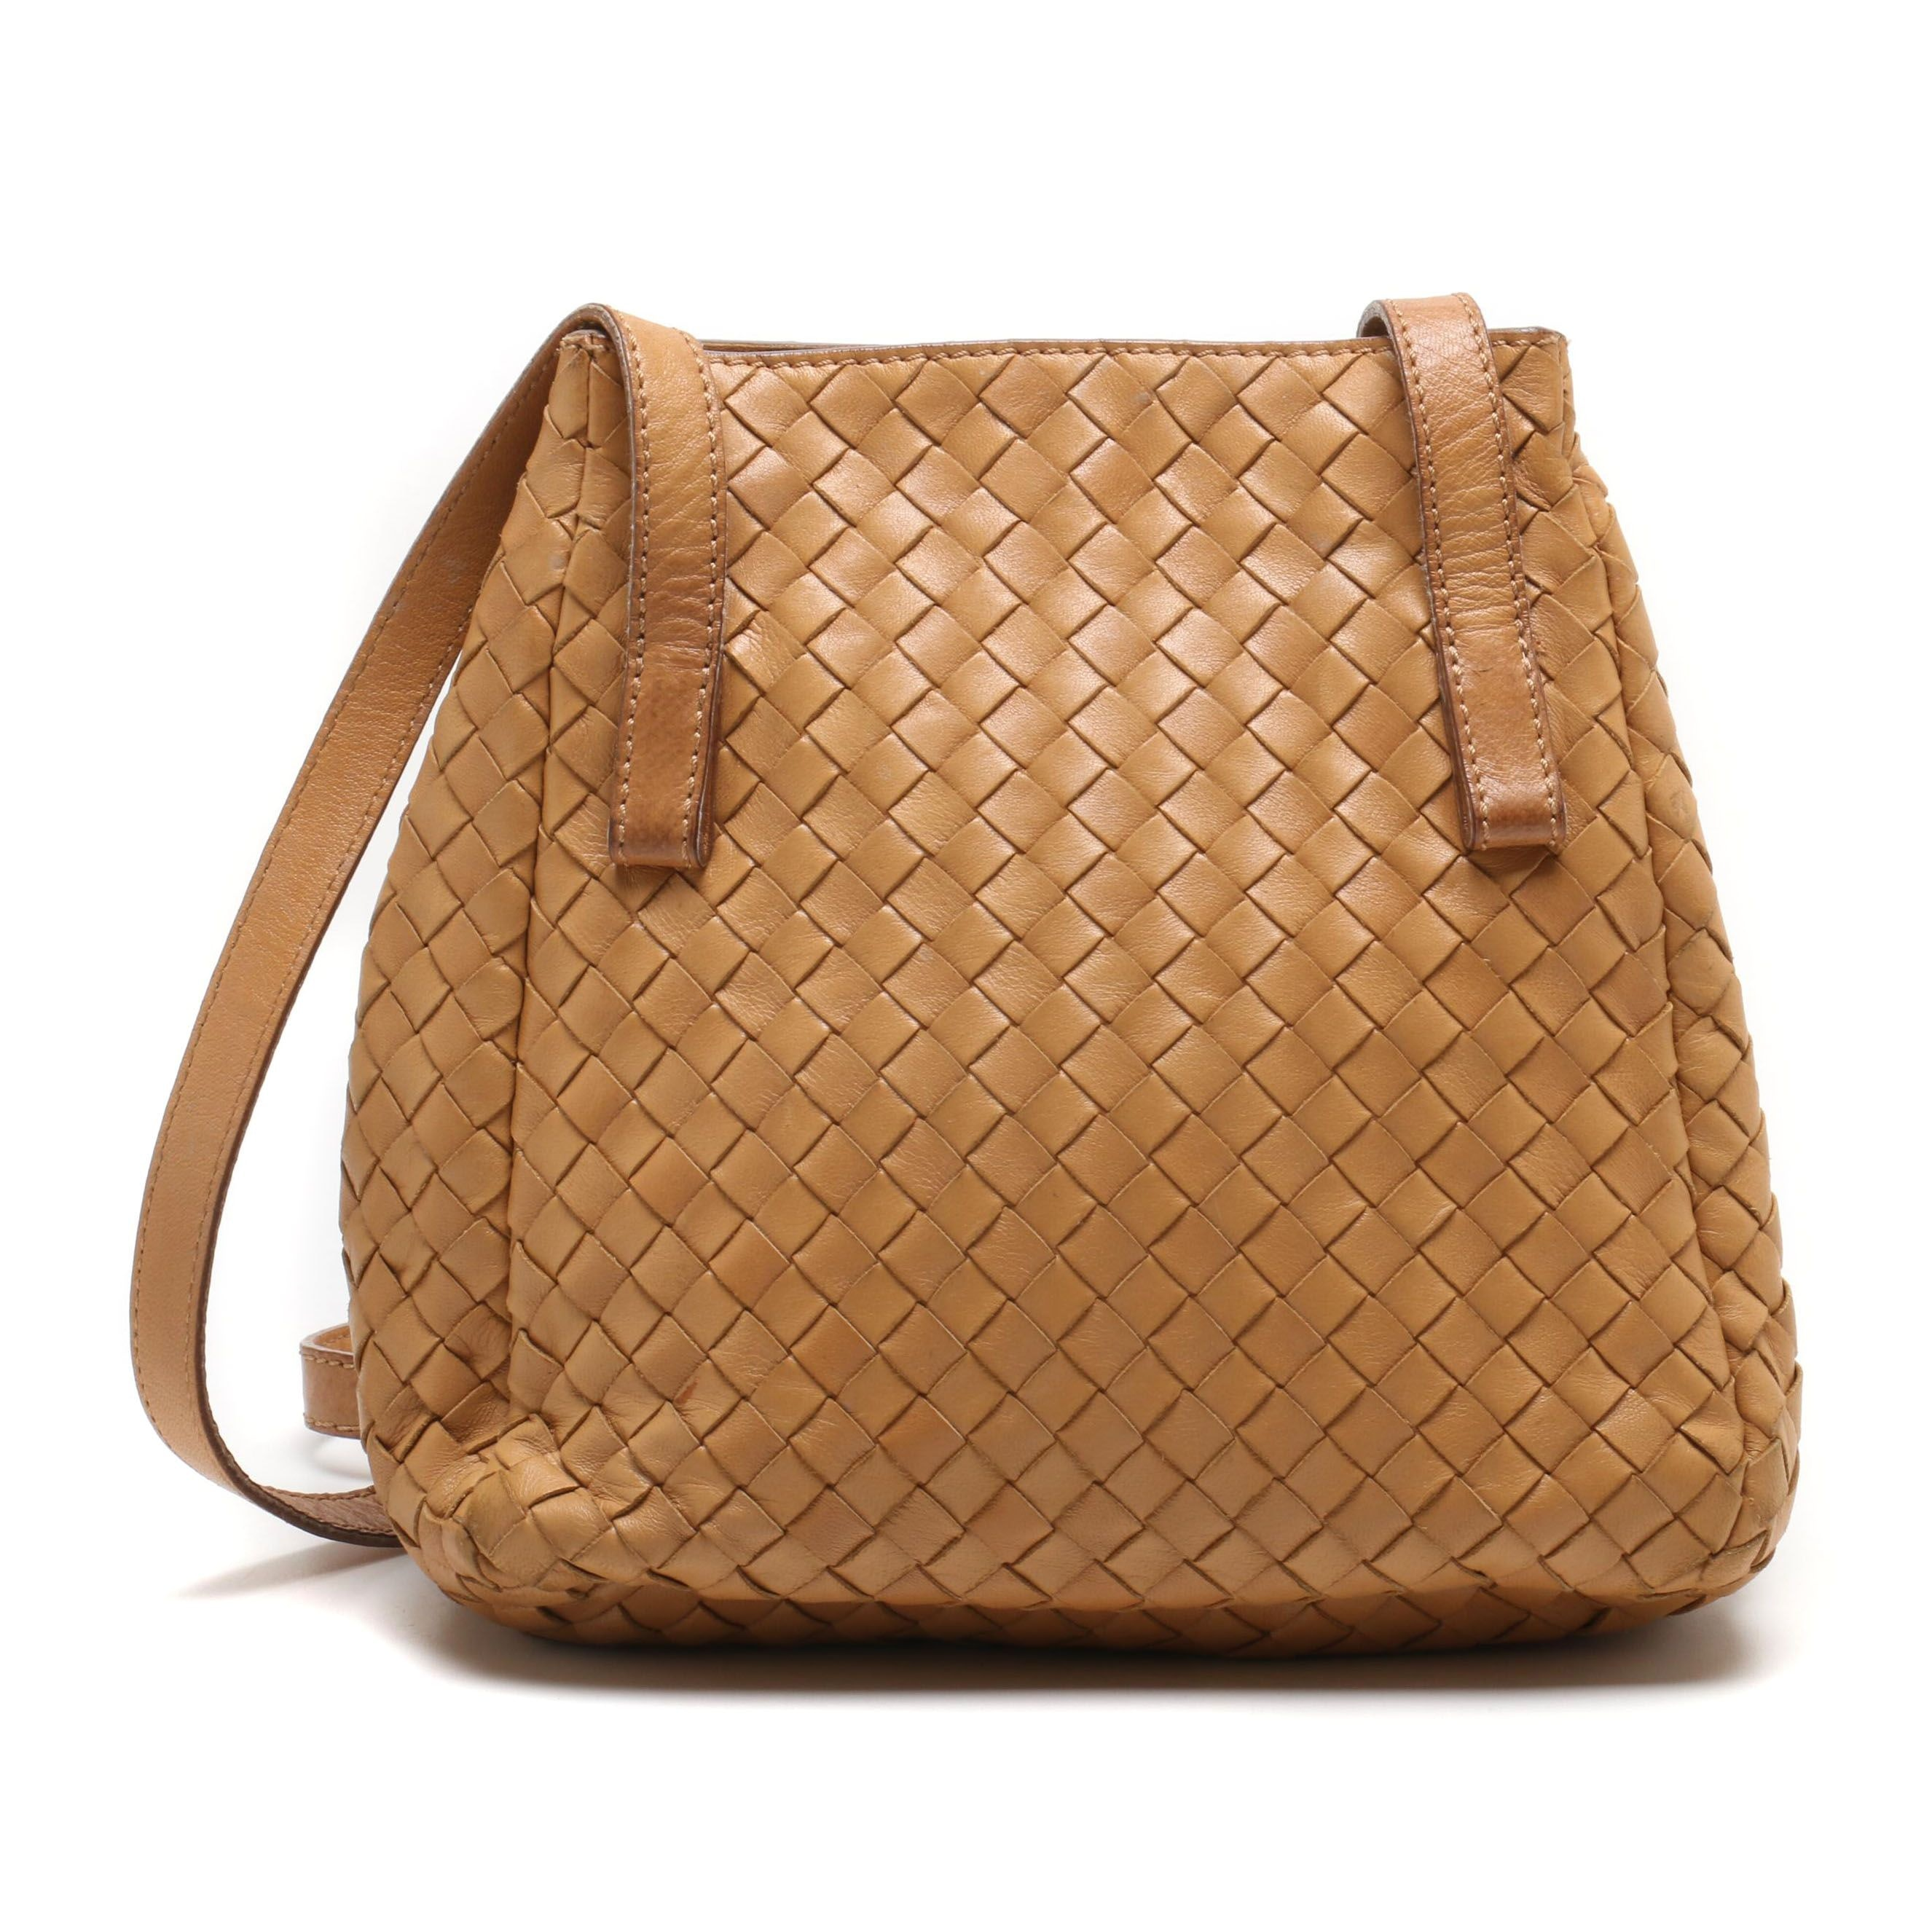 Bottega Veneta Tan Intrecciato Napa Leather Shoulder Bag